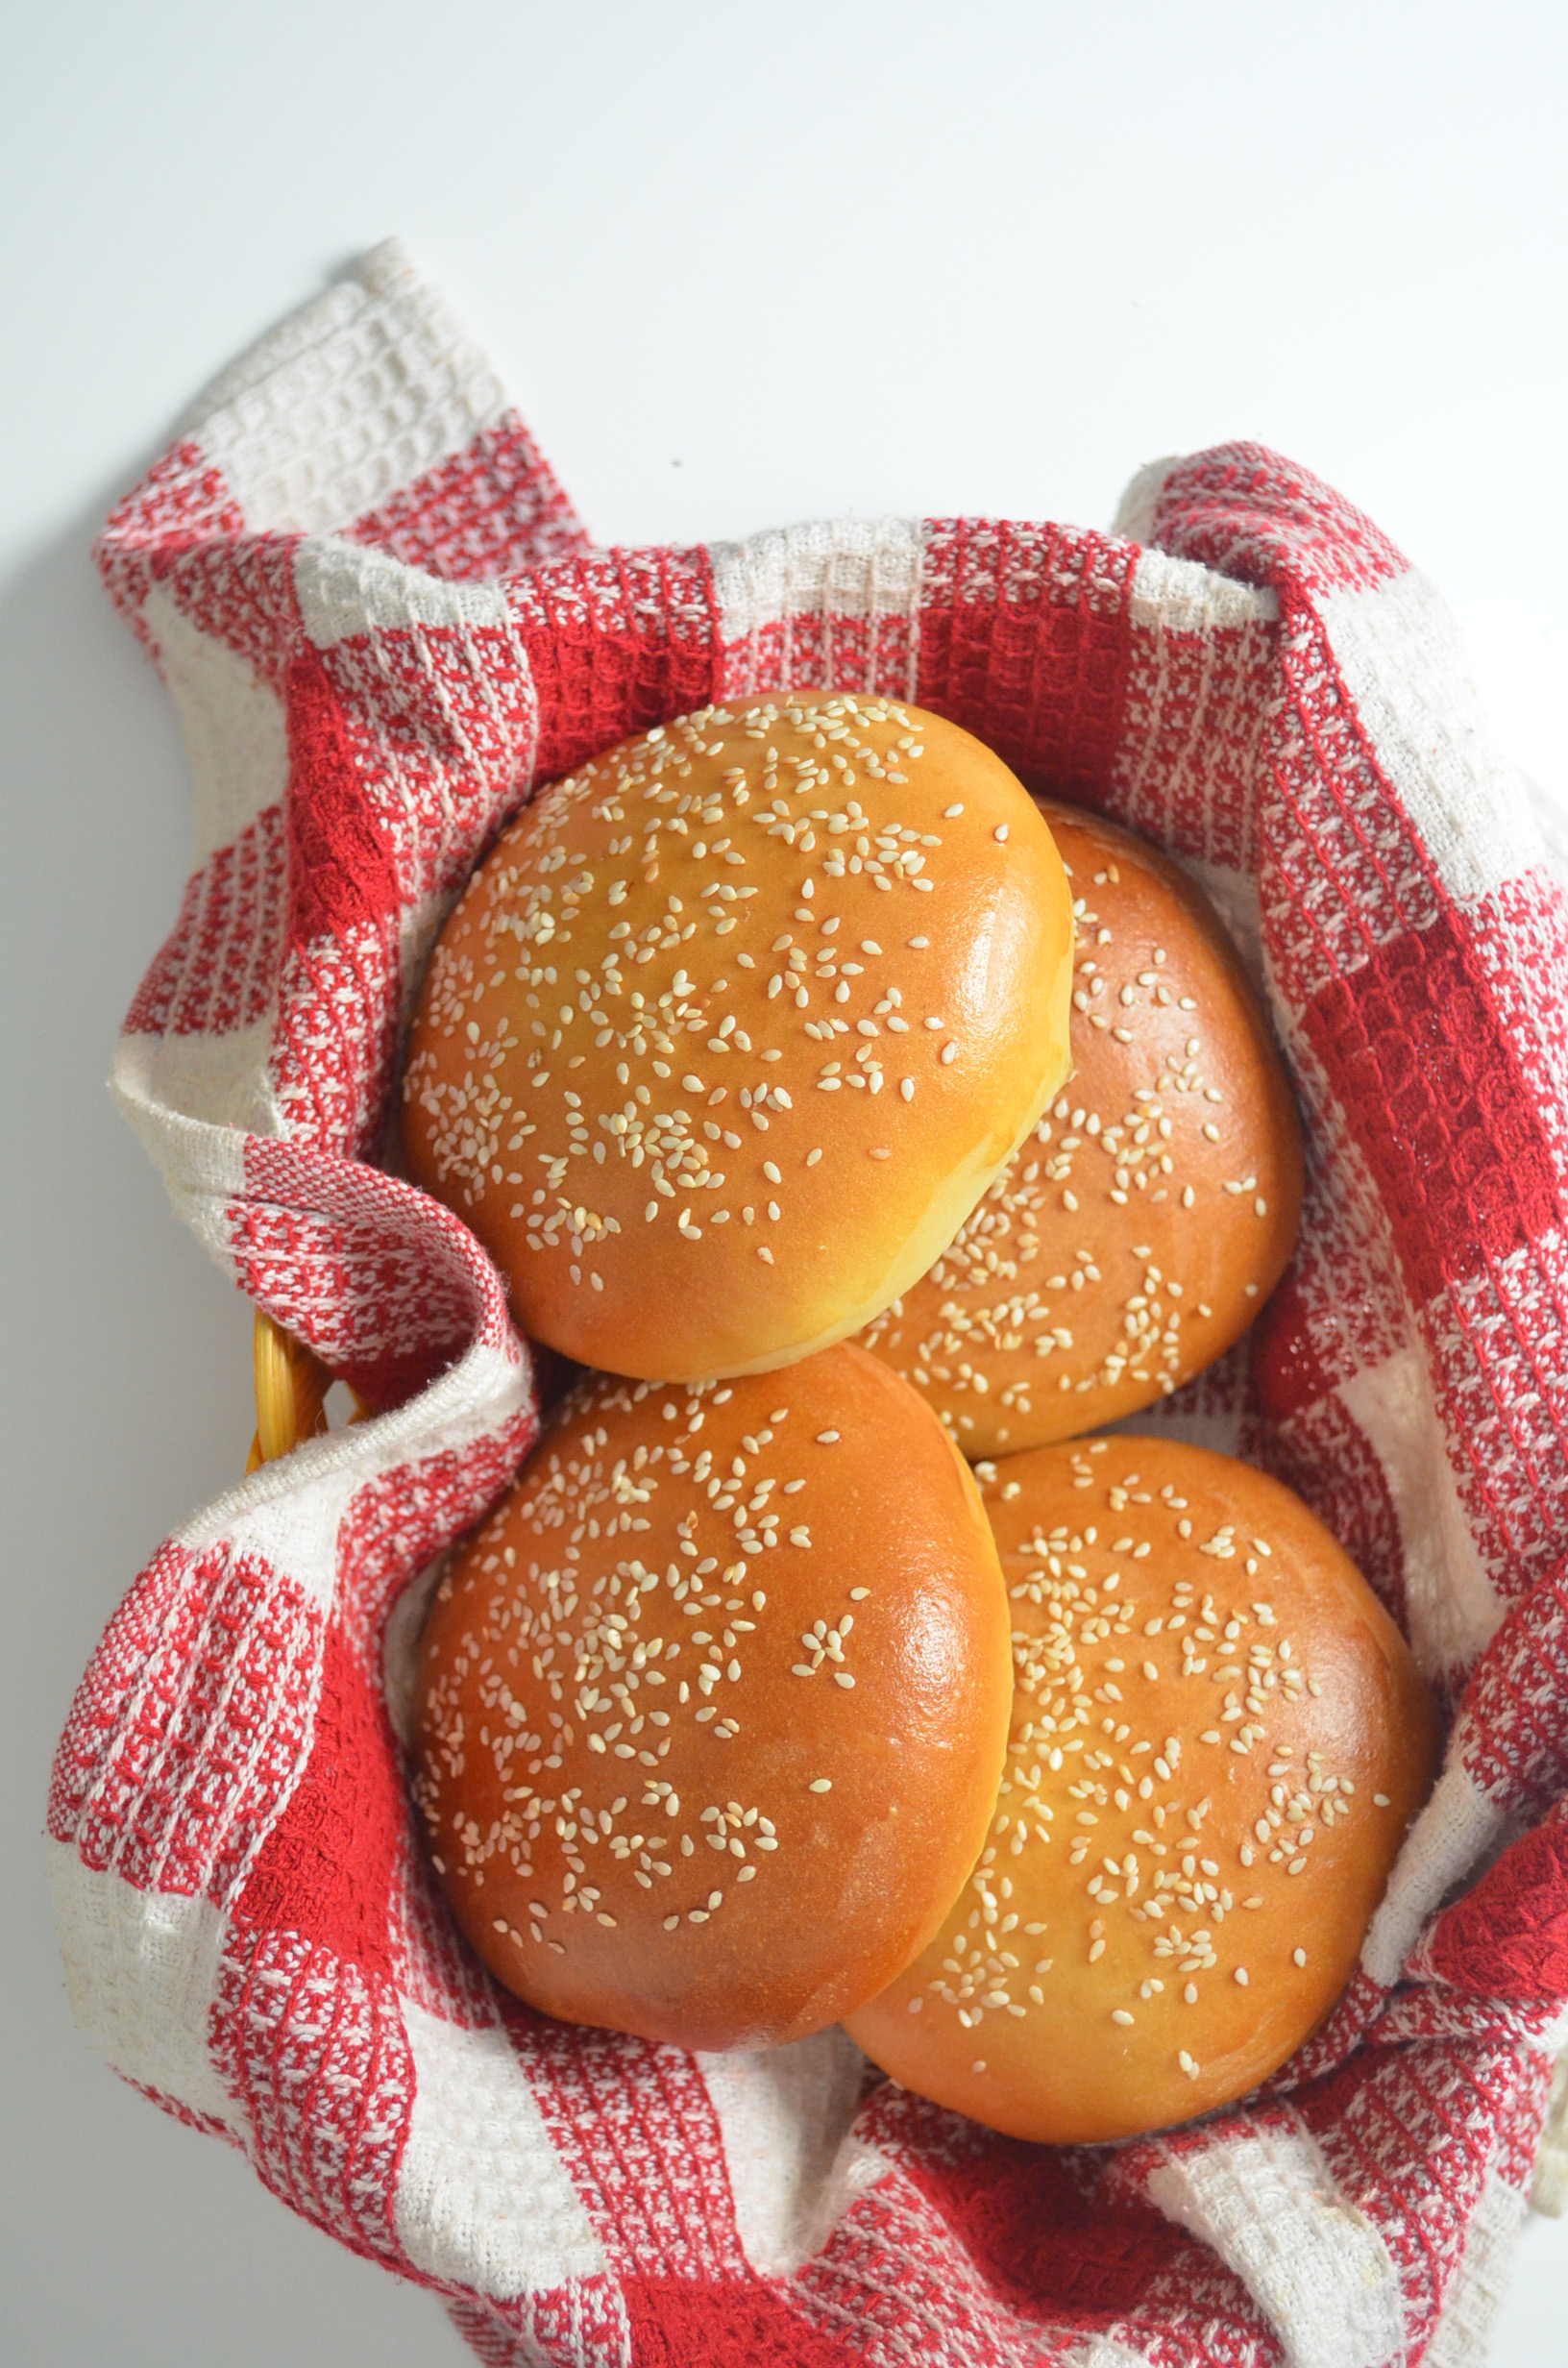 Homemade Hamburger Buns